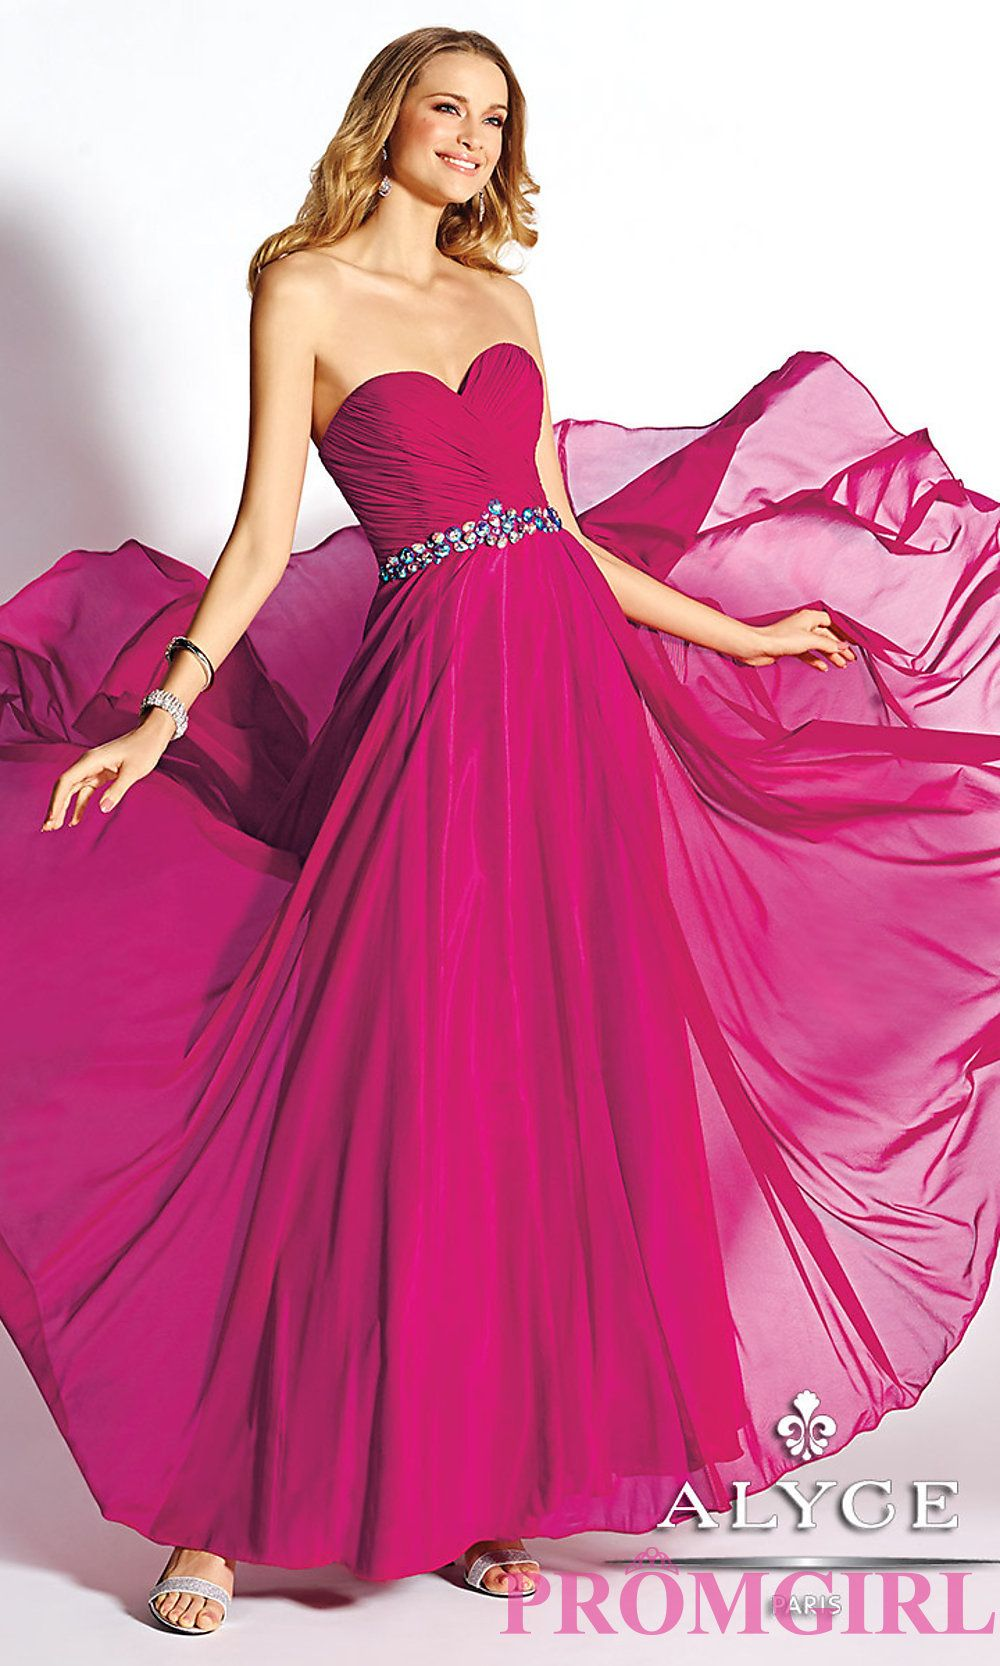 Stunning raspberry pink floor length strapless prom dress by Alyce |  Available at promgirl.com